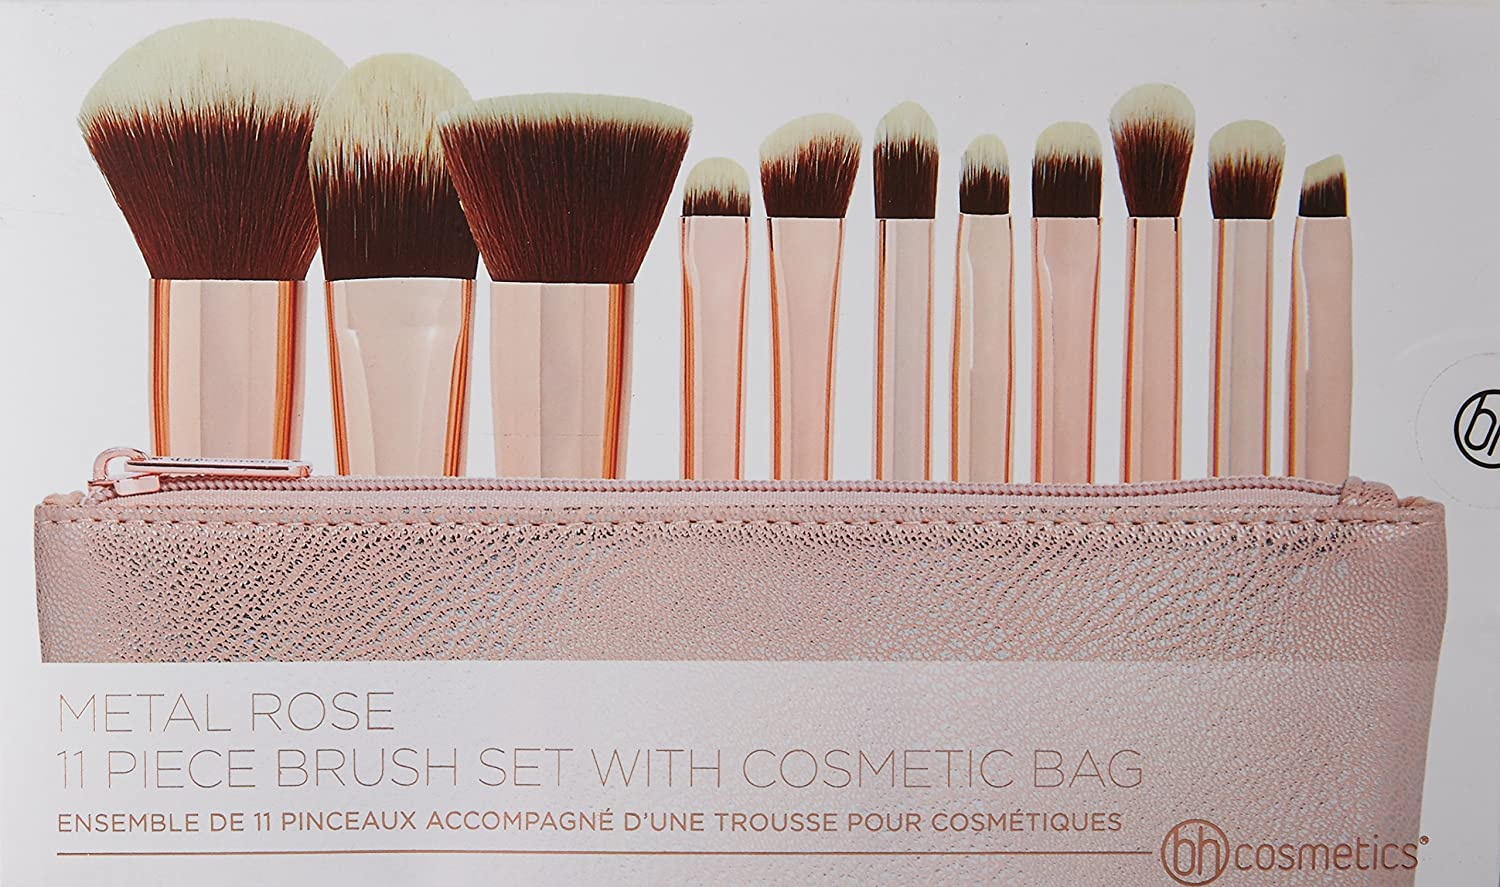 ef77268260154 bhcosmetics Metal Rose - 11 Piece Brush Set With Cosmetic Bag   Amazon.co.uk  Beauty